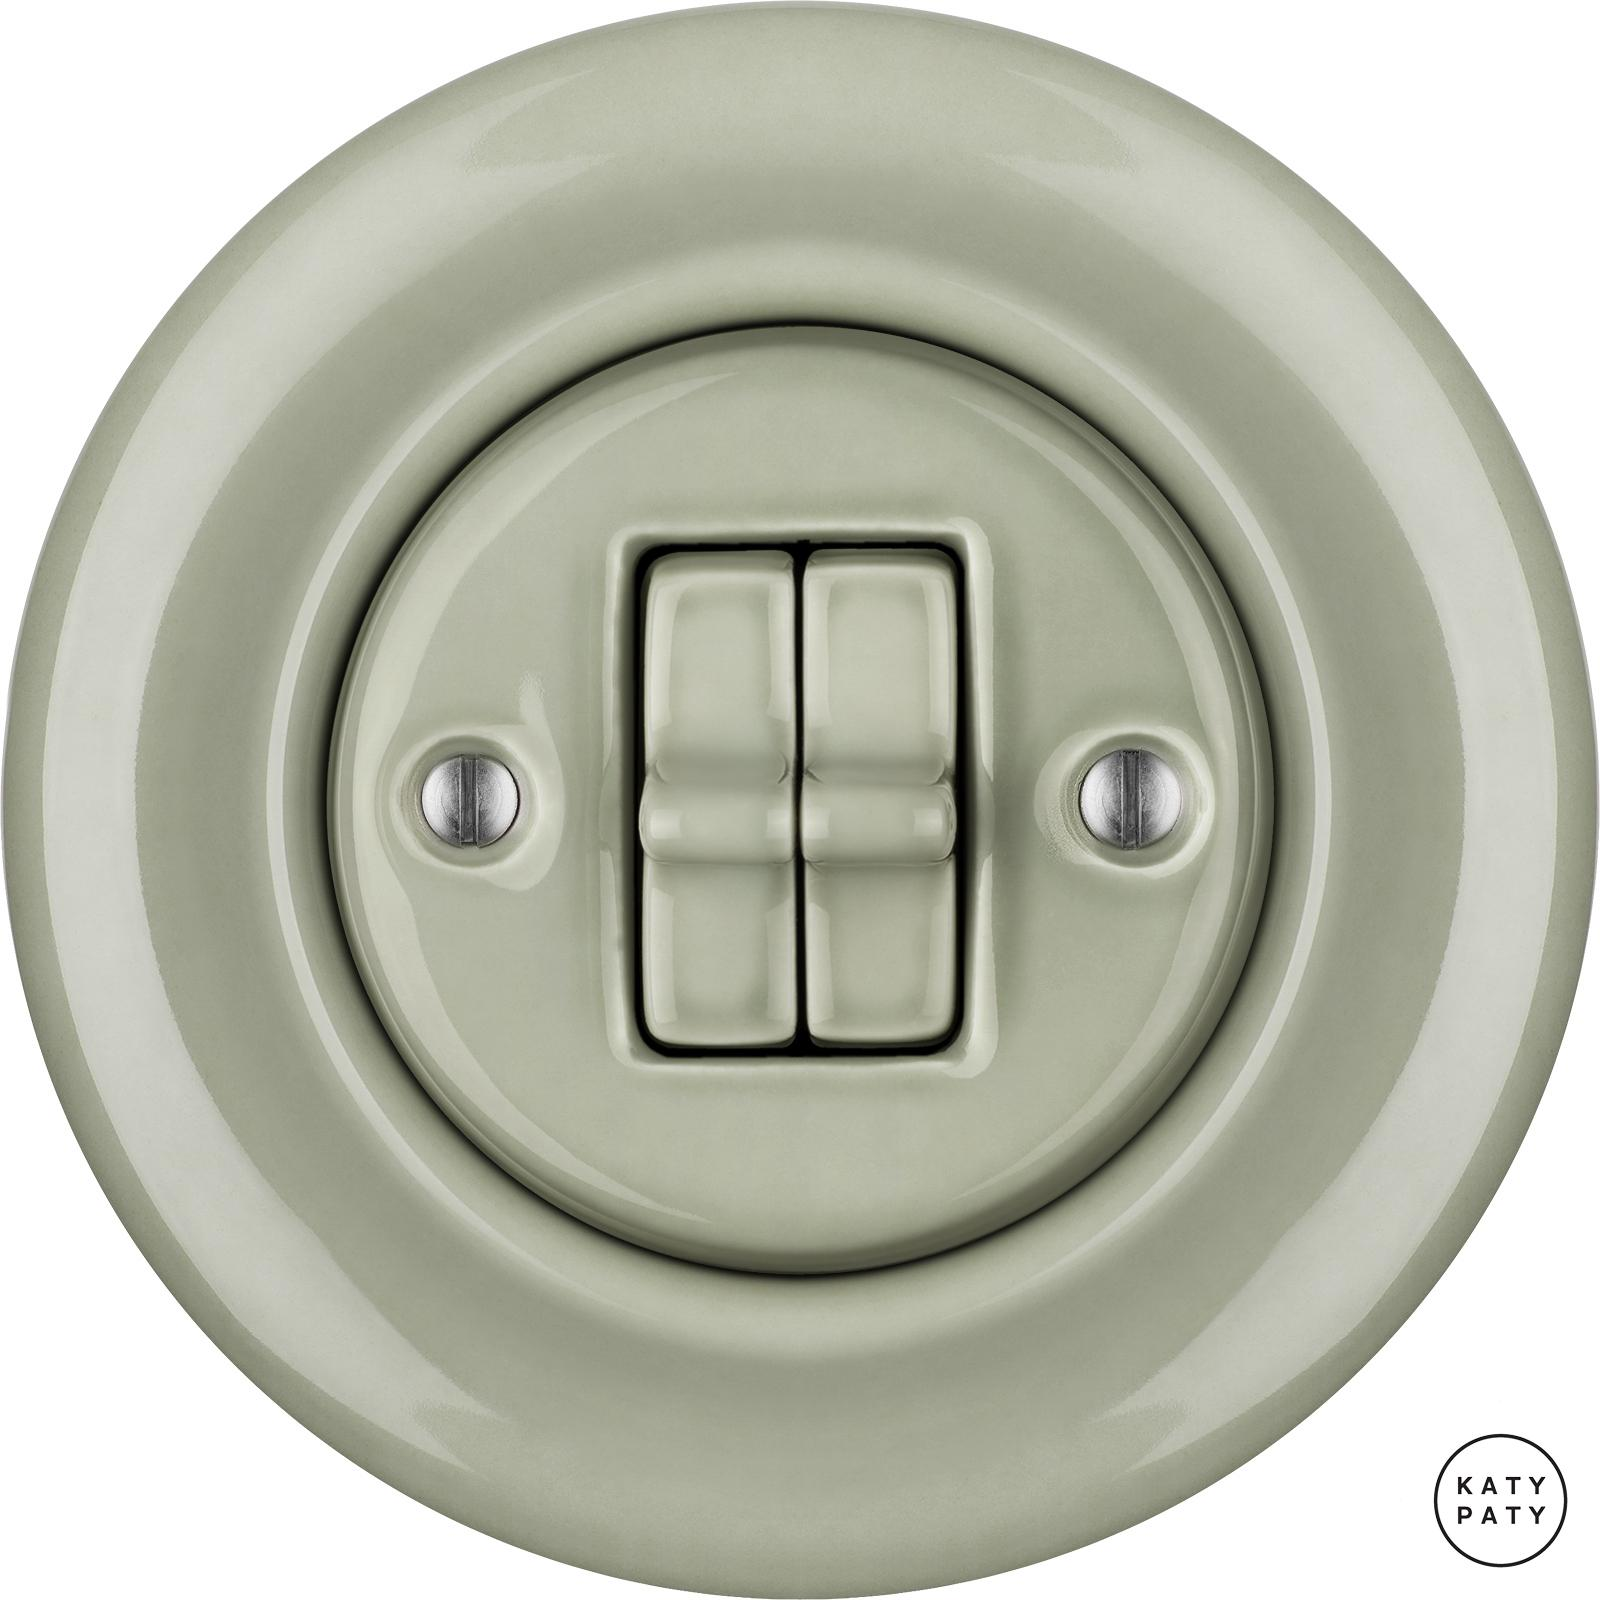 Porcelain toggle switches - a double gang ()  - CHLORA | Katy Paty